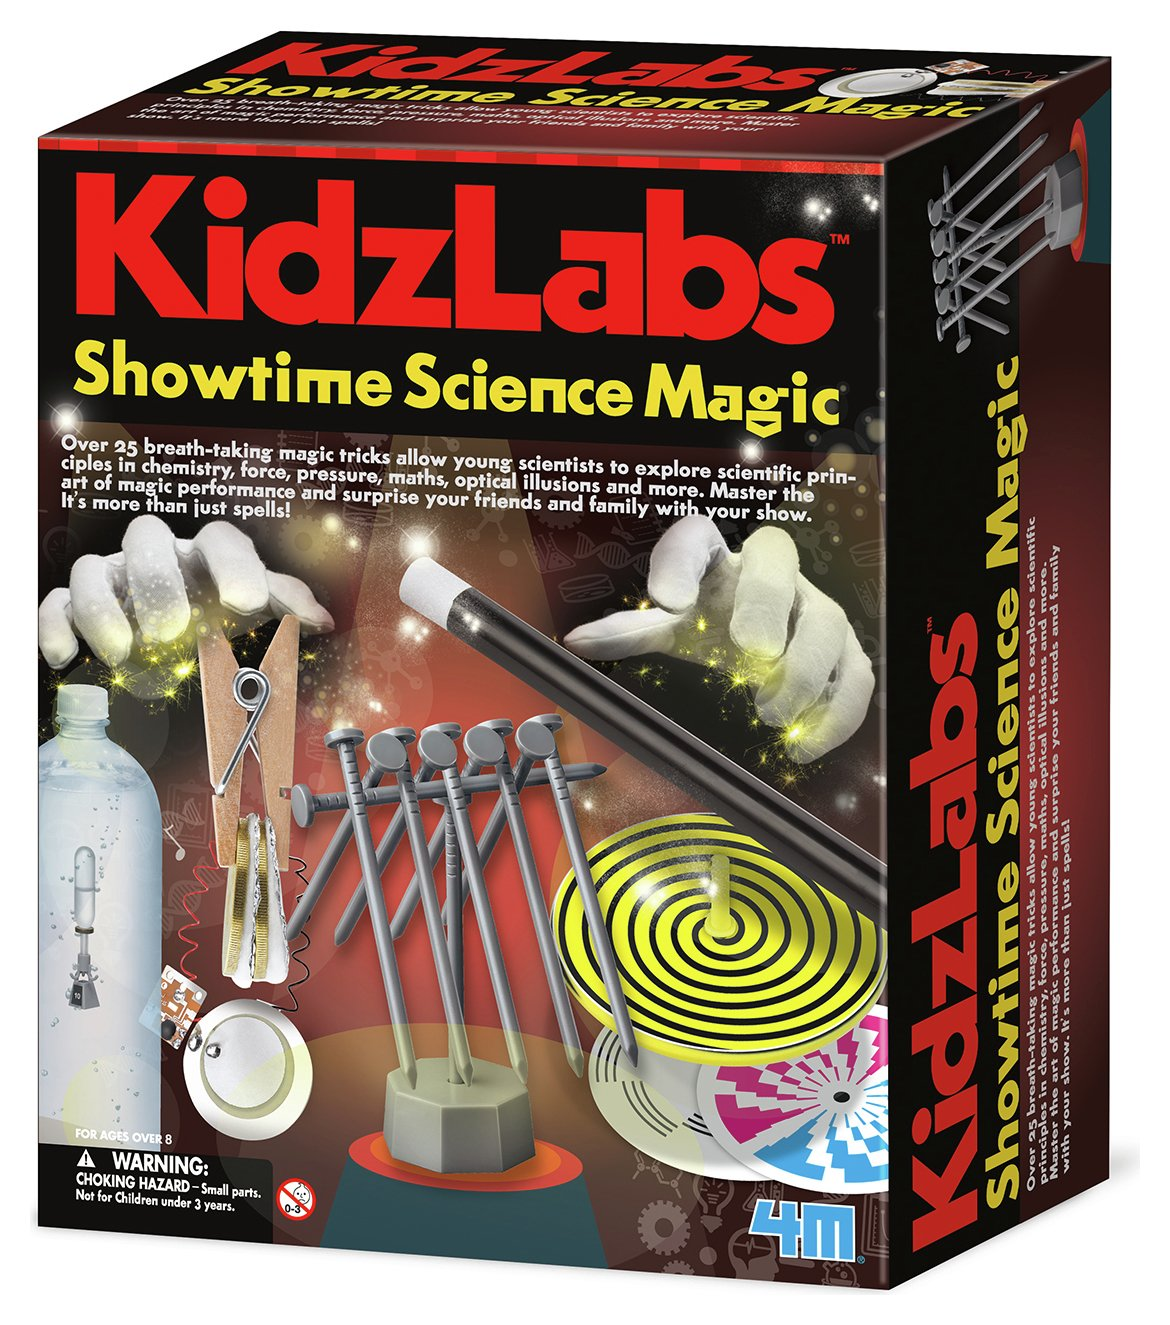 Image of 4M Kidz Labs Showtime Science Magic